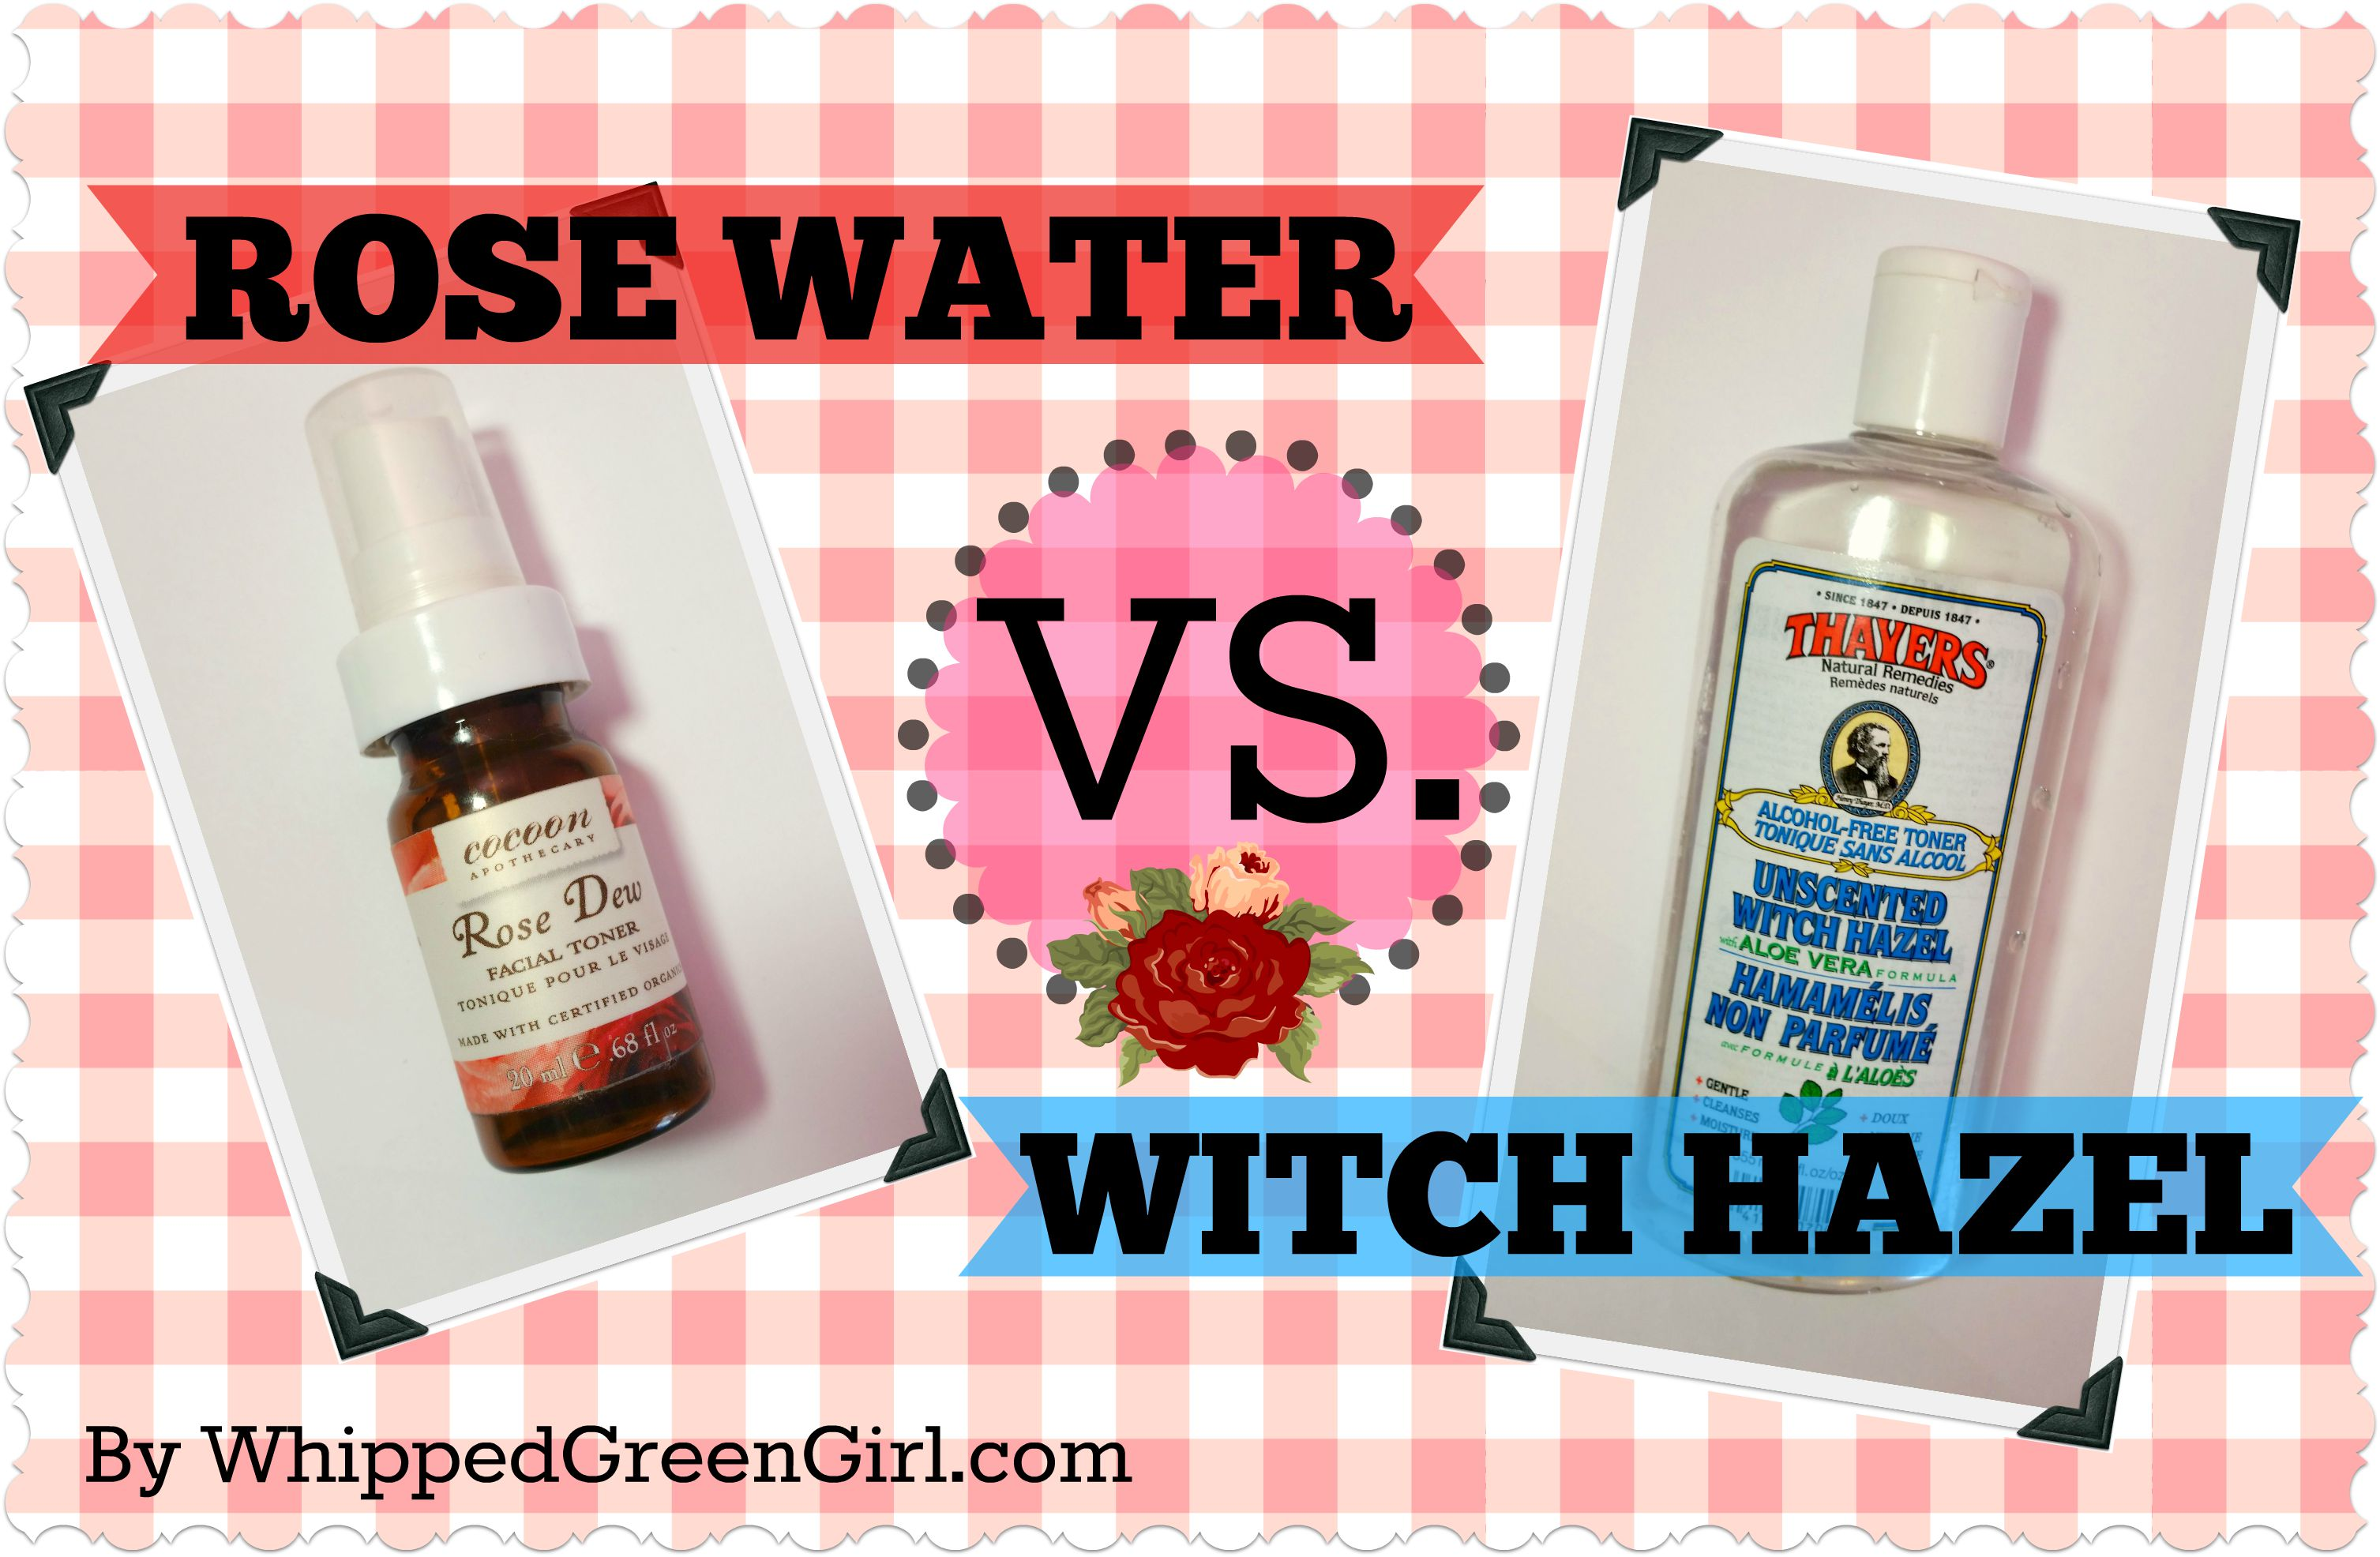 Rose Water VS Witch Hazel - what is best for your skin! By WhippedGreenGirl.